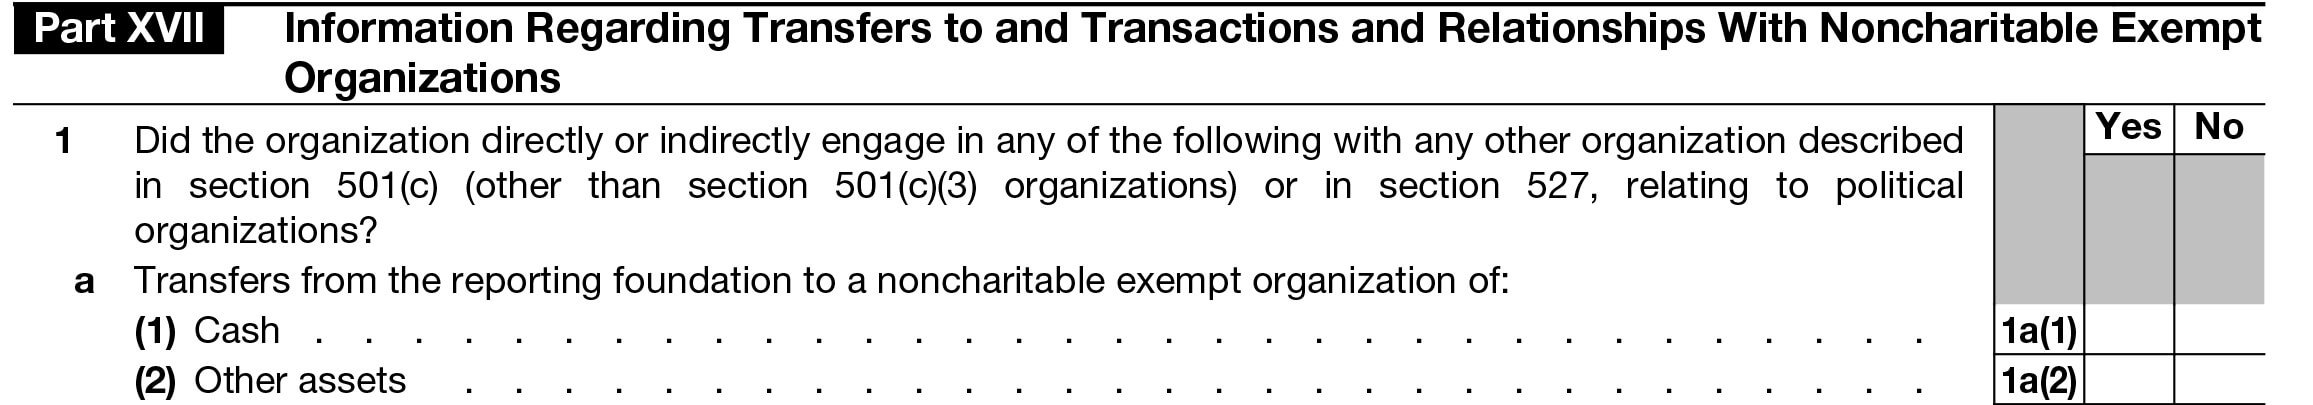 Part XVII. Information Regarding Transfers to and Transactions and Relationships With Noncharitable Exempt Organizations